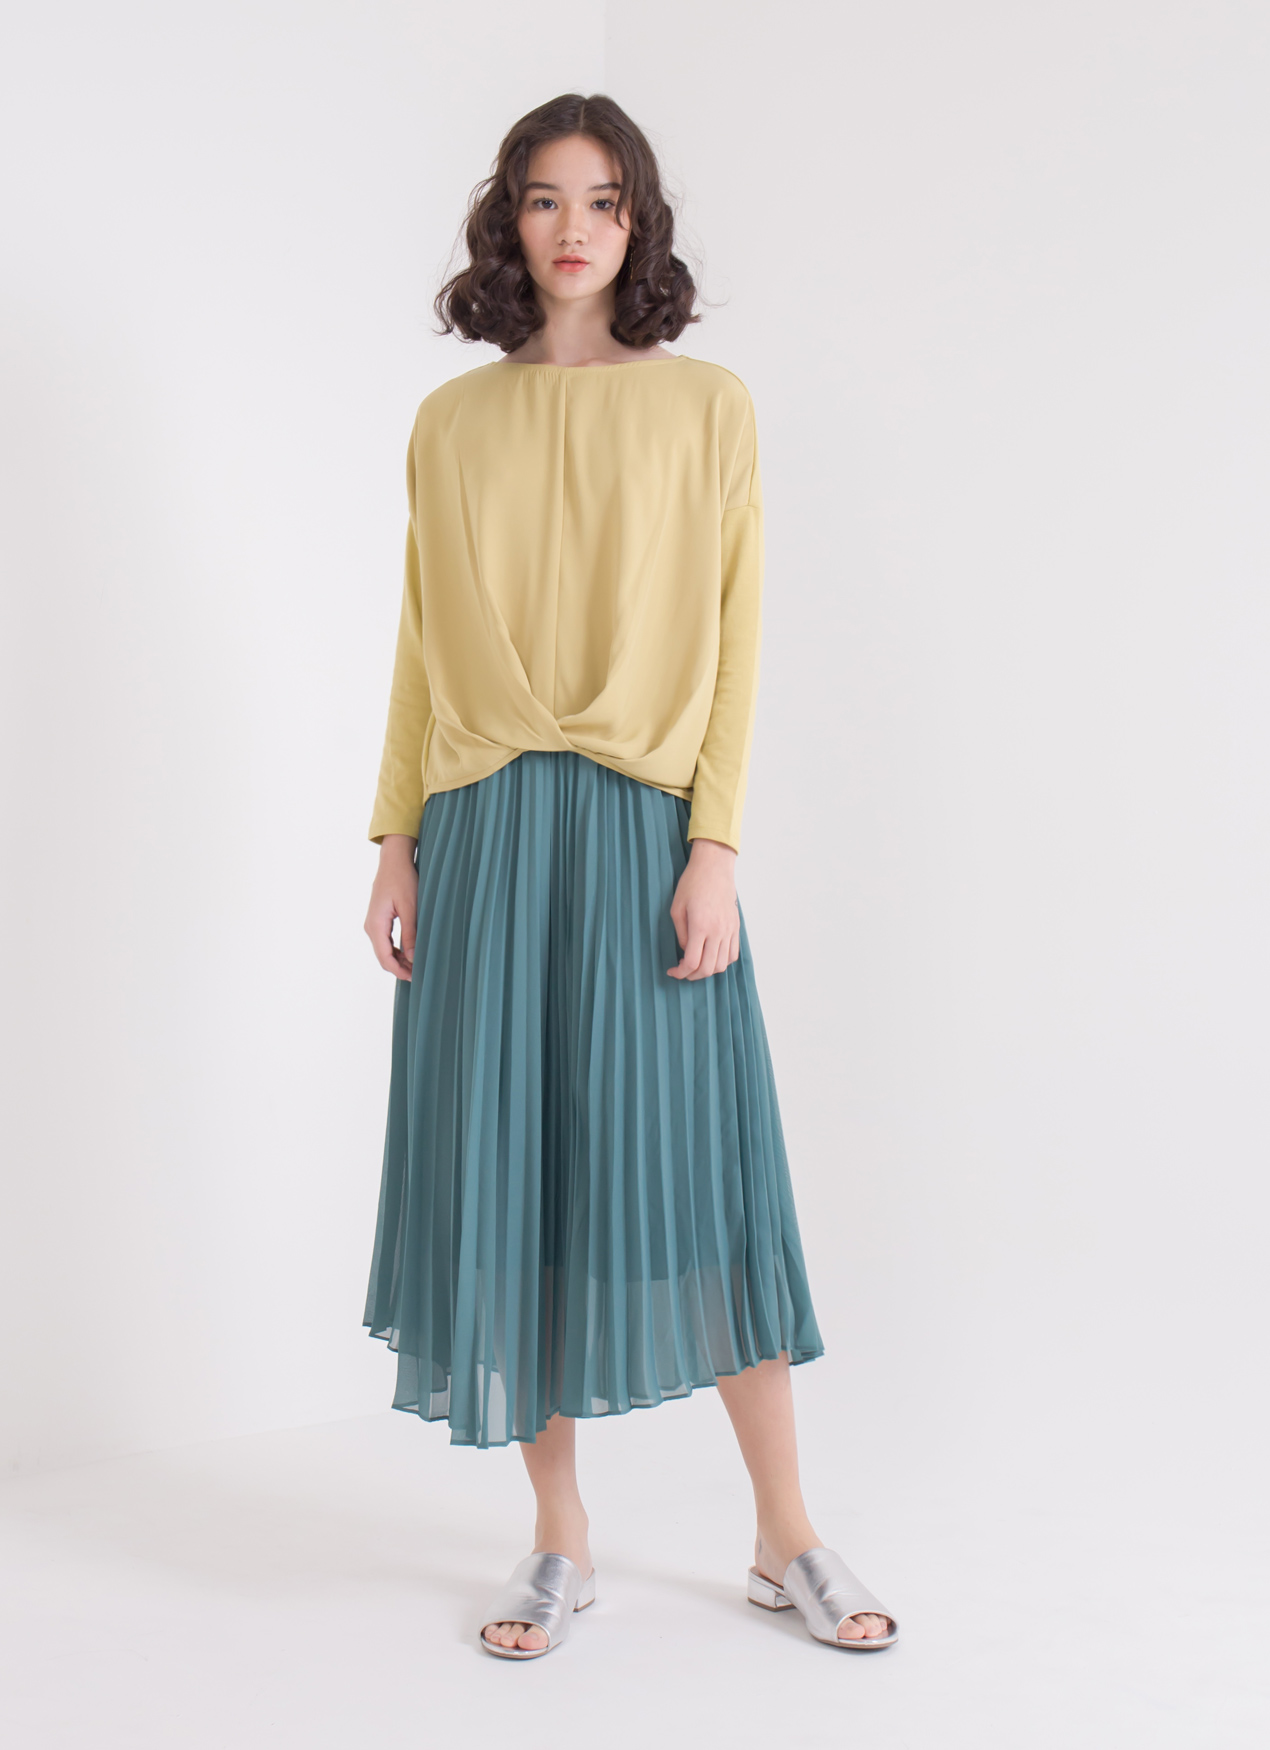 American Holic Jordan Skirt - Green